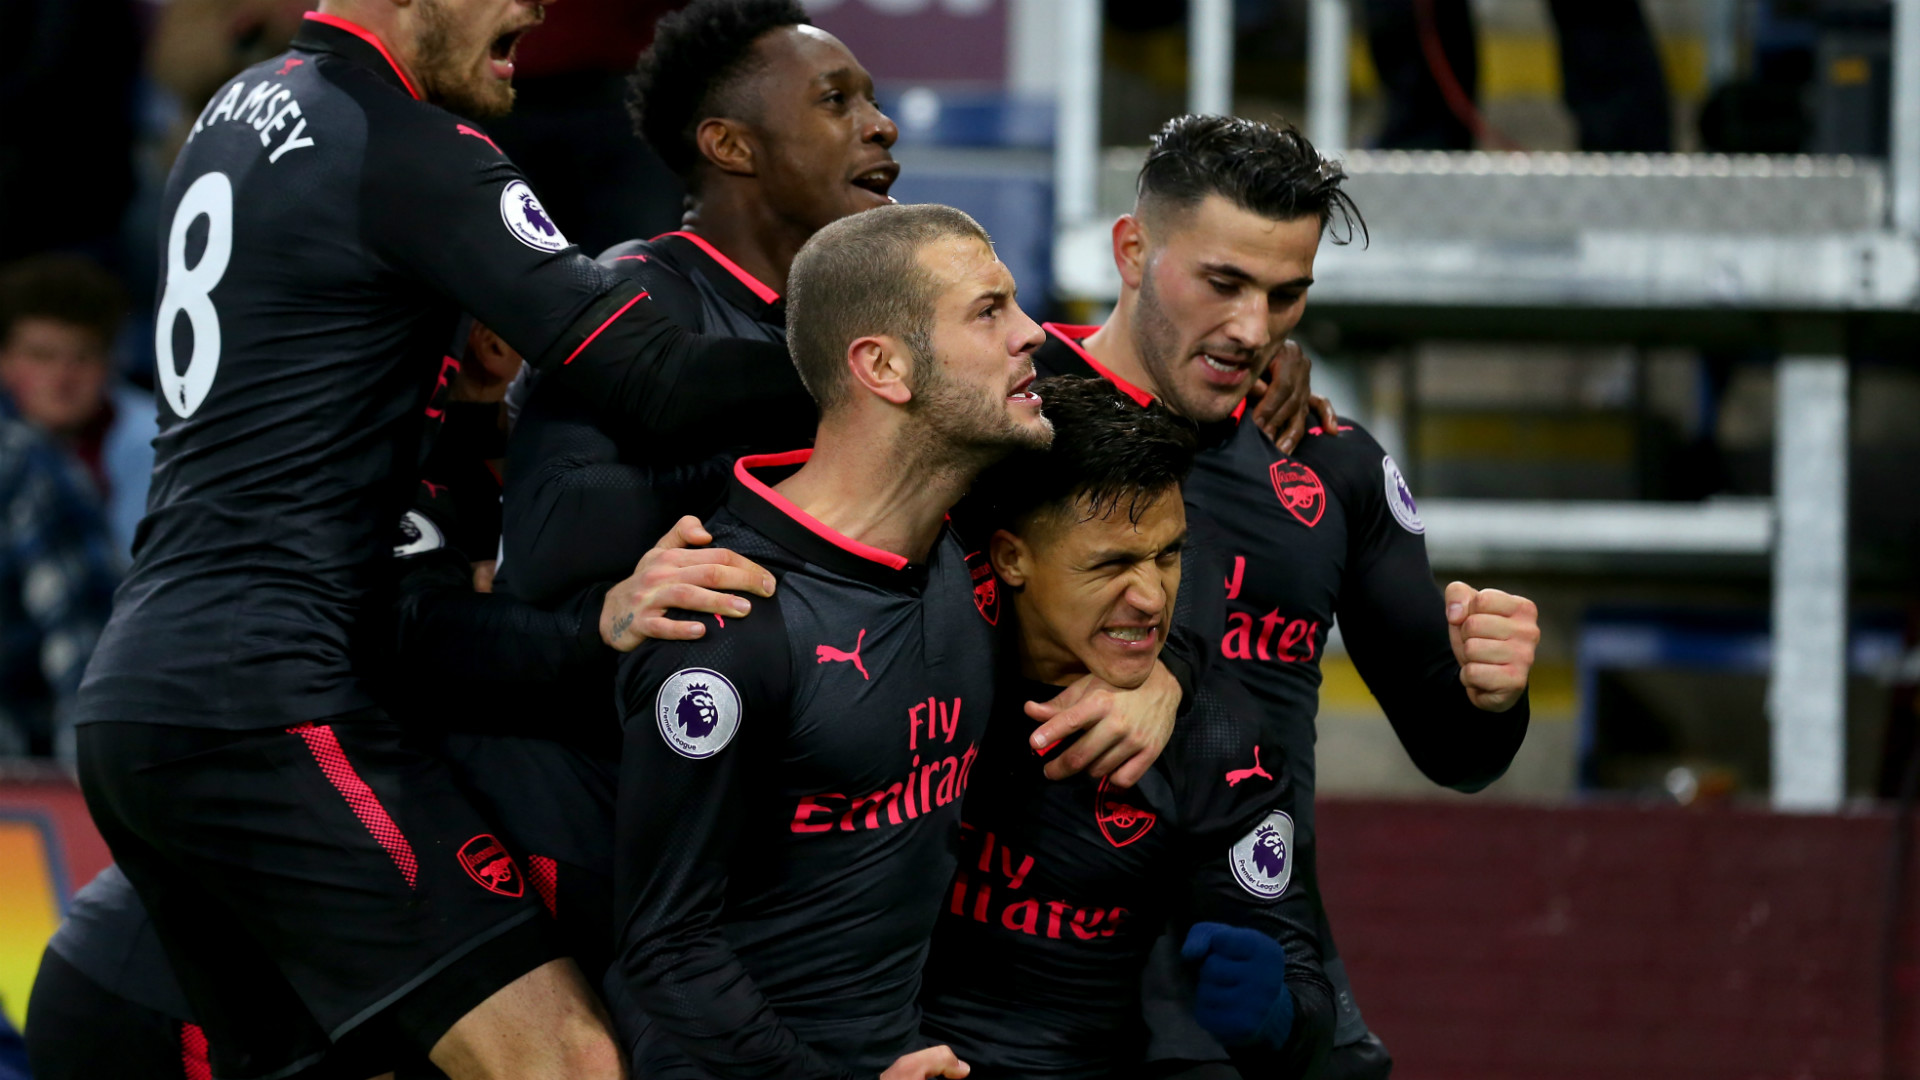 Arsenal Curi 3 Angka di Kandang Burnley Lewat Penalti